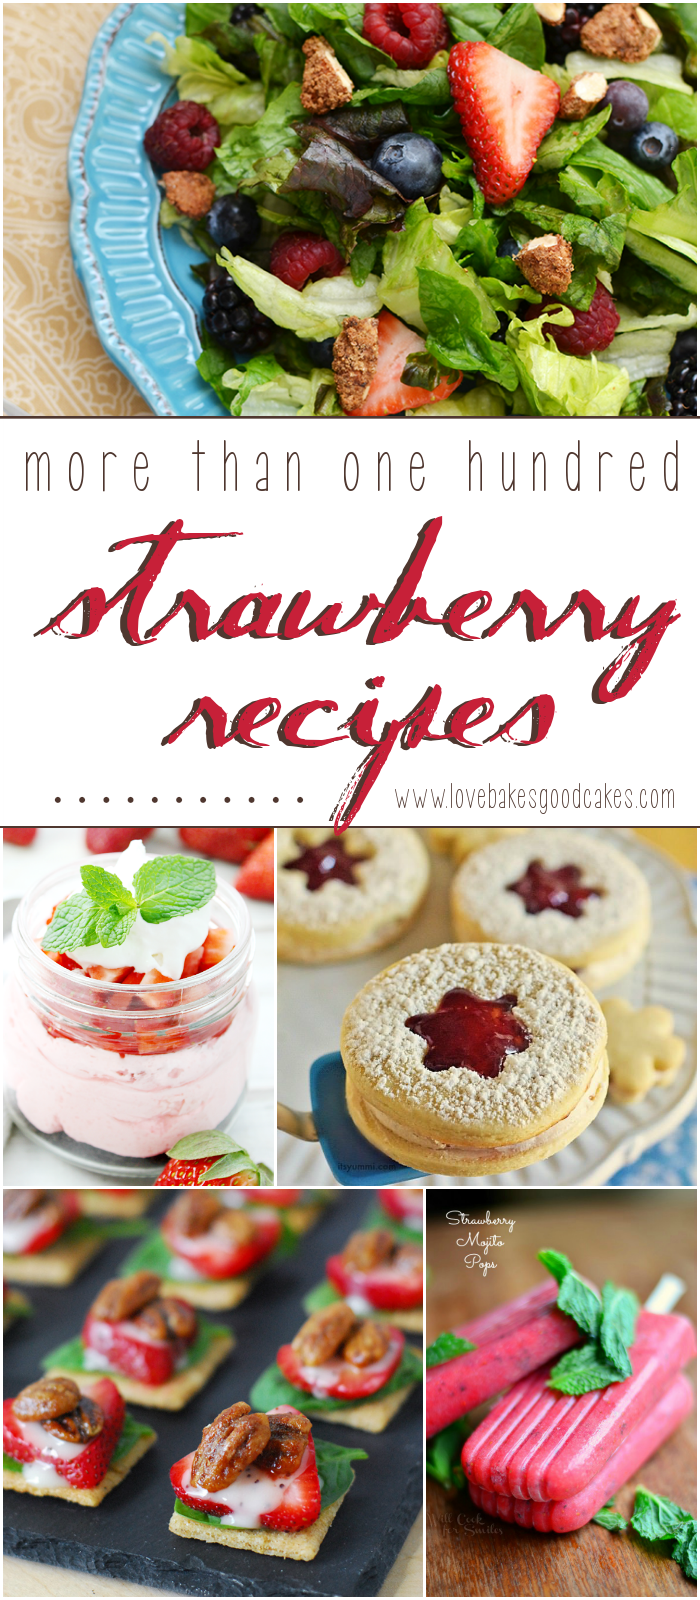 More than 100 Strawberry recipes!